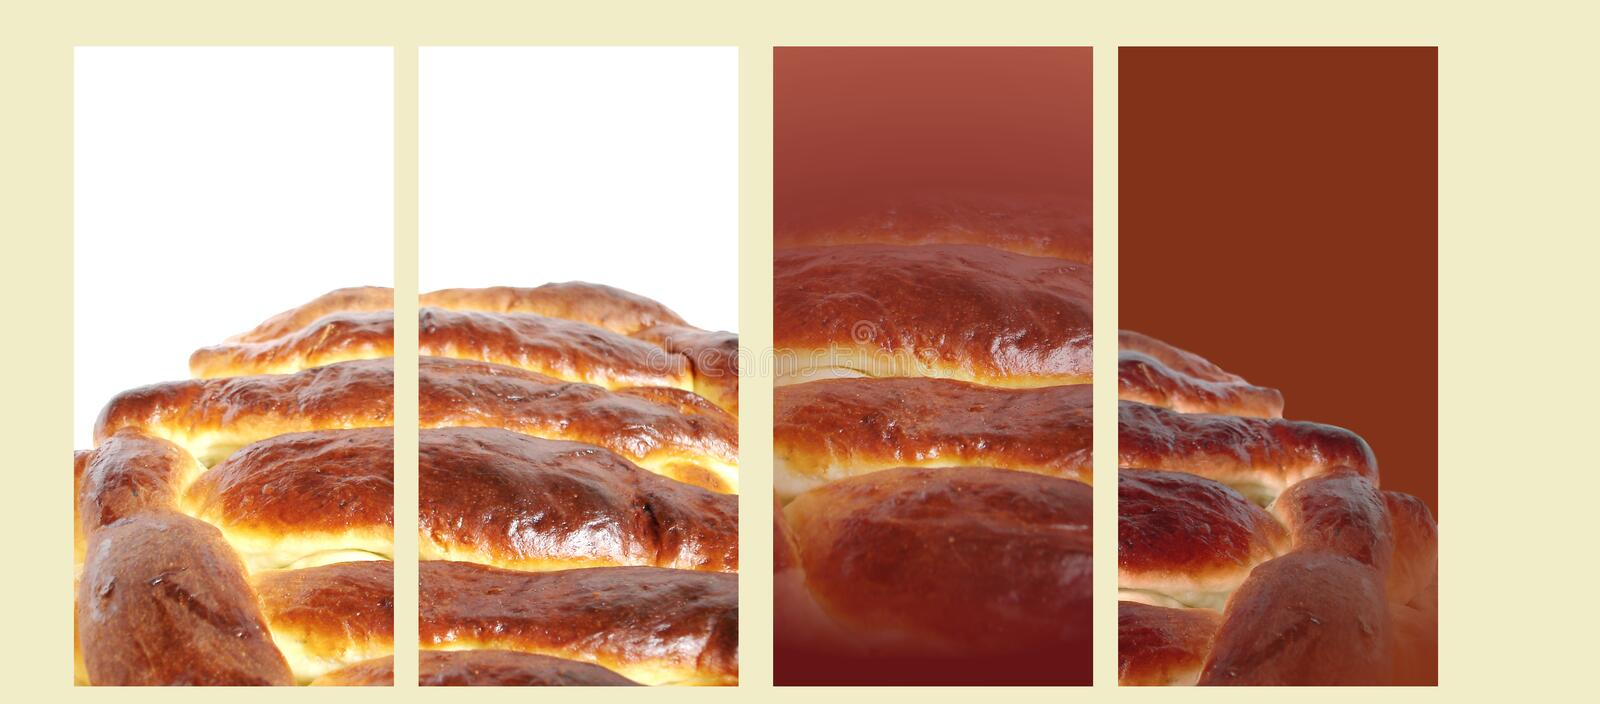 Whole delicious pie banners royalty free stock photography